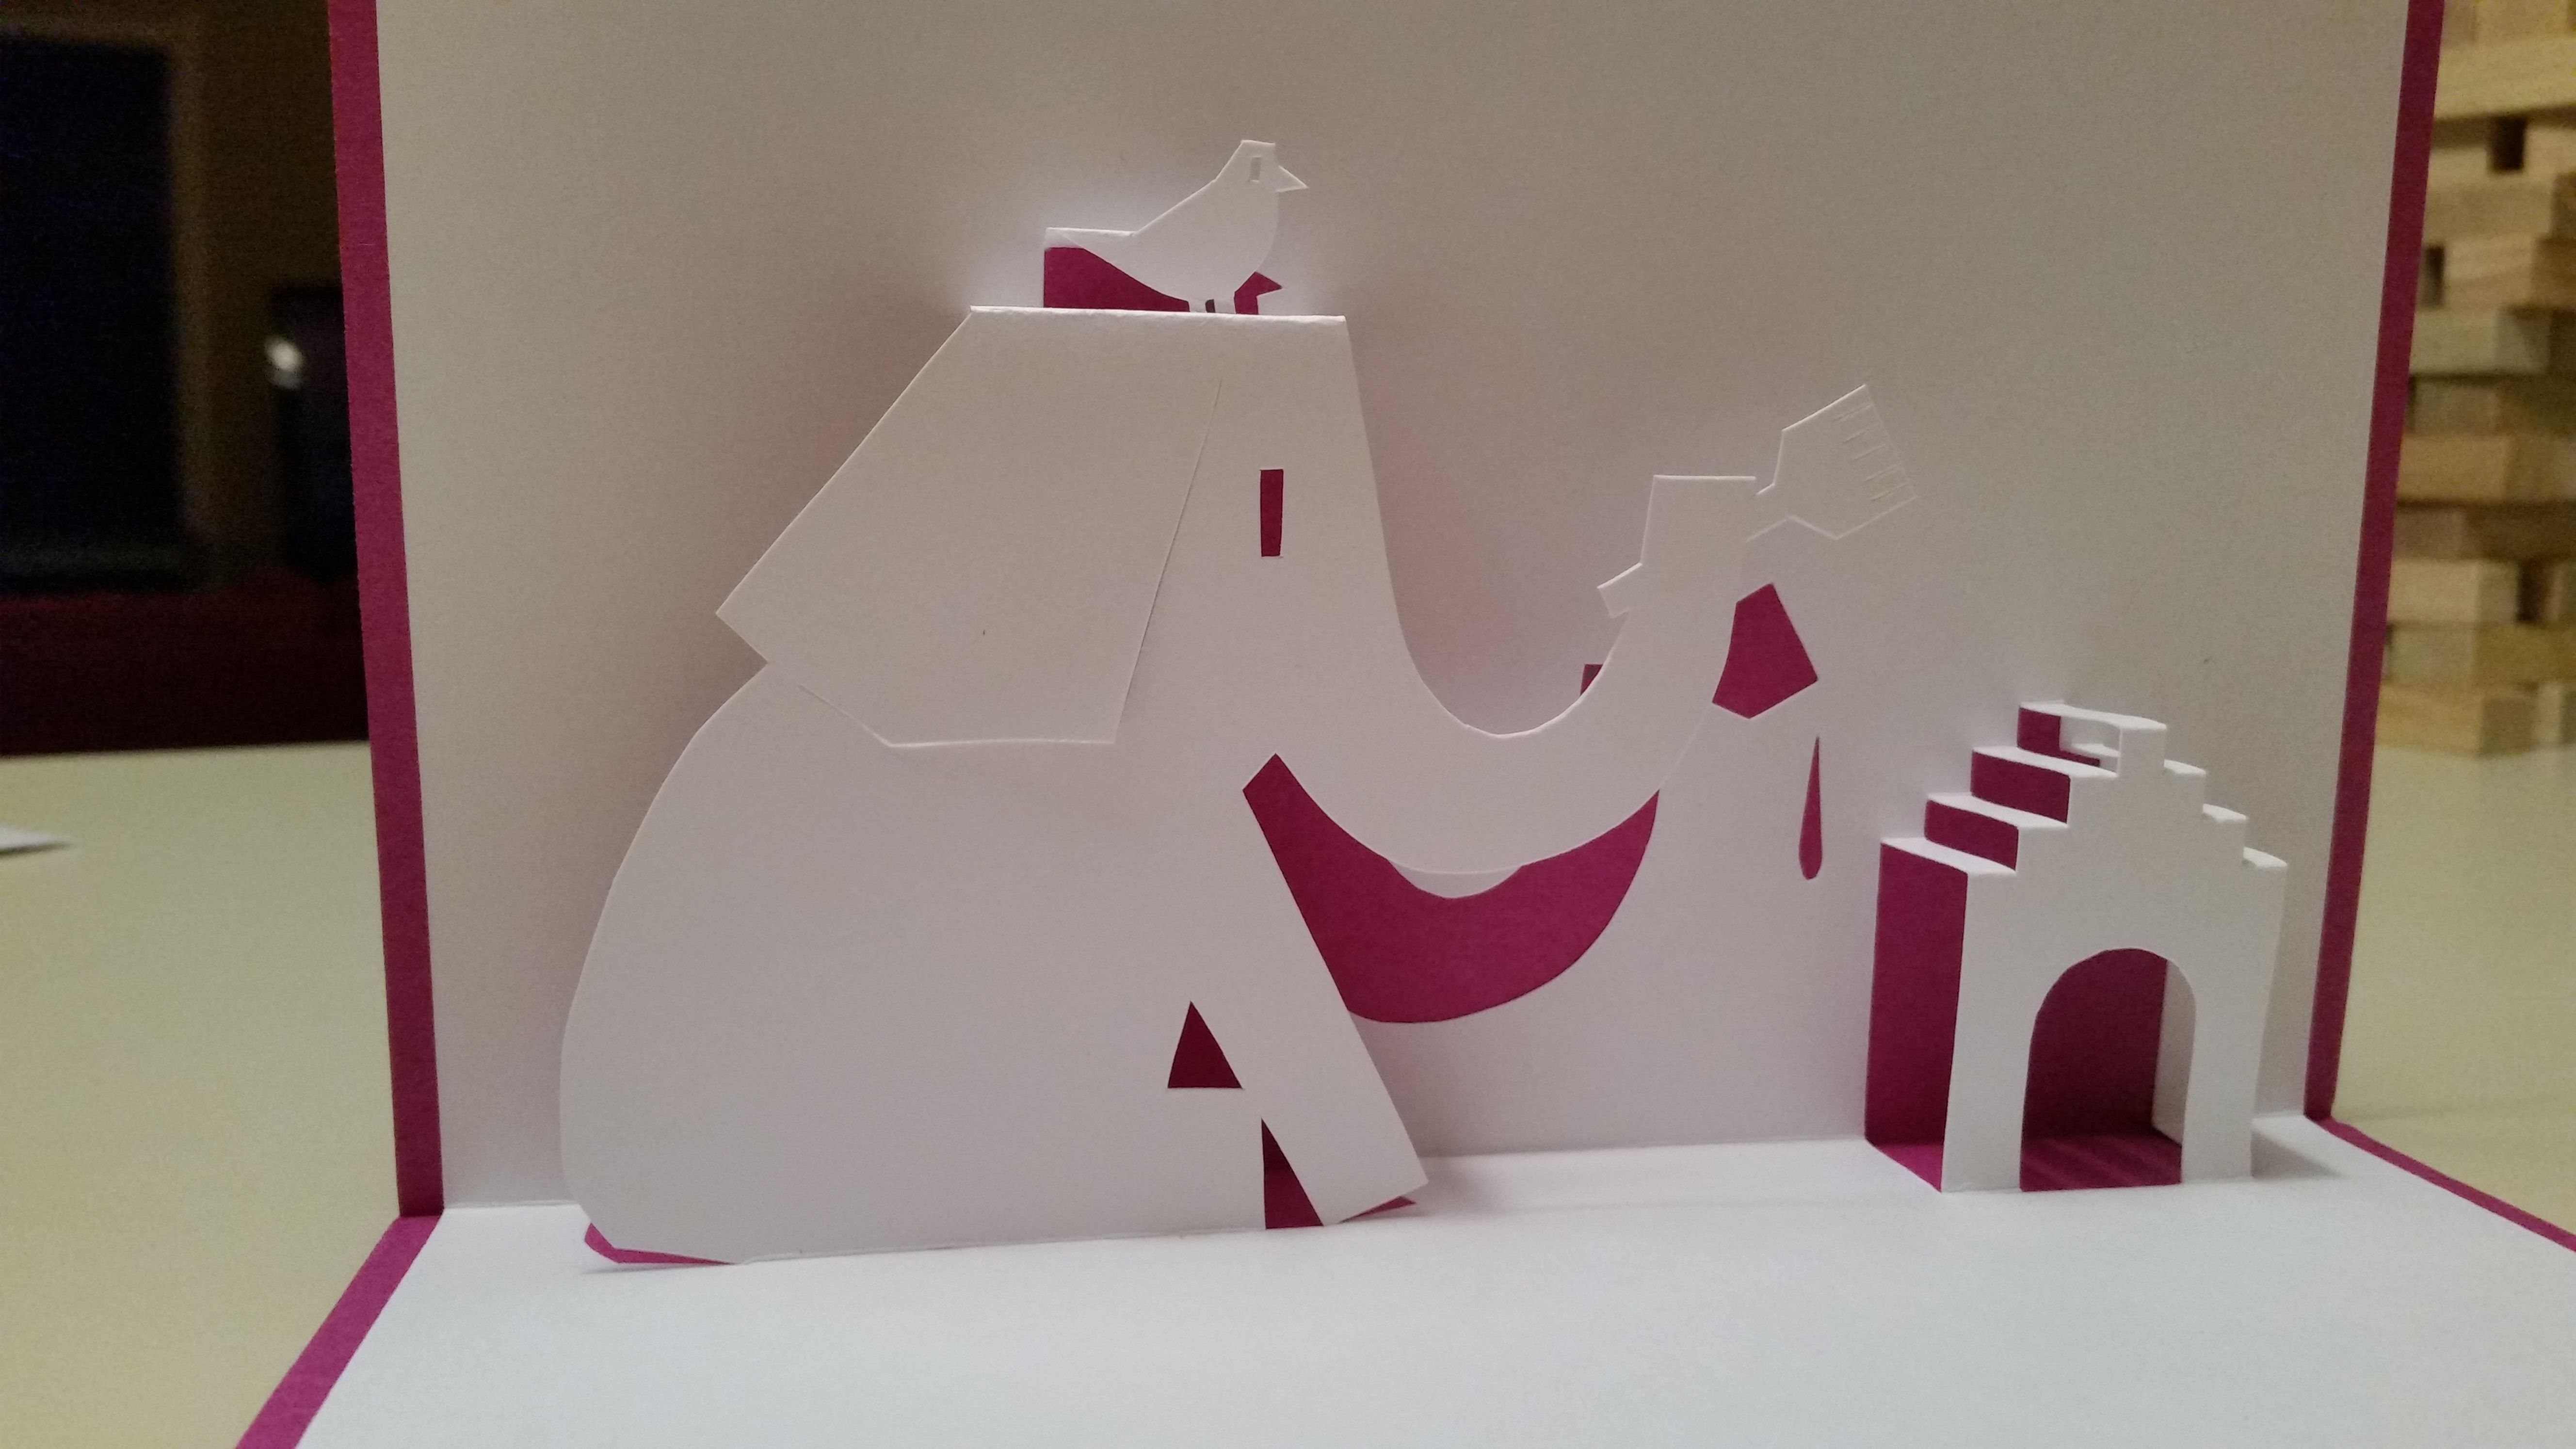 Elephant Painting Dog House Pop Up Card Template From Handmade Papercraft Club At Http Www5d Biglobe N Pop Up Card Templates Paper Crafts Elephant Painting